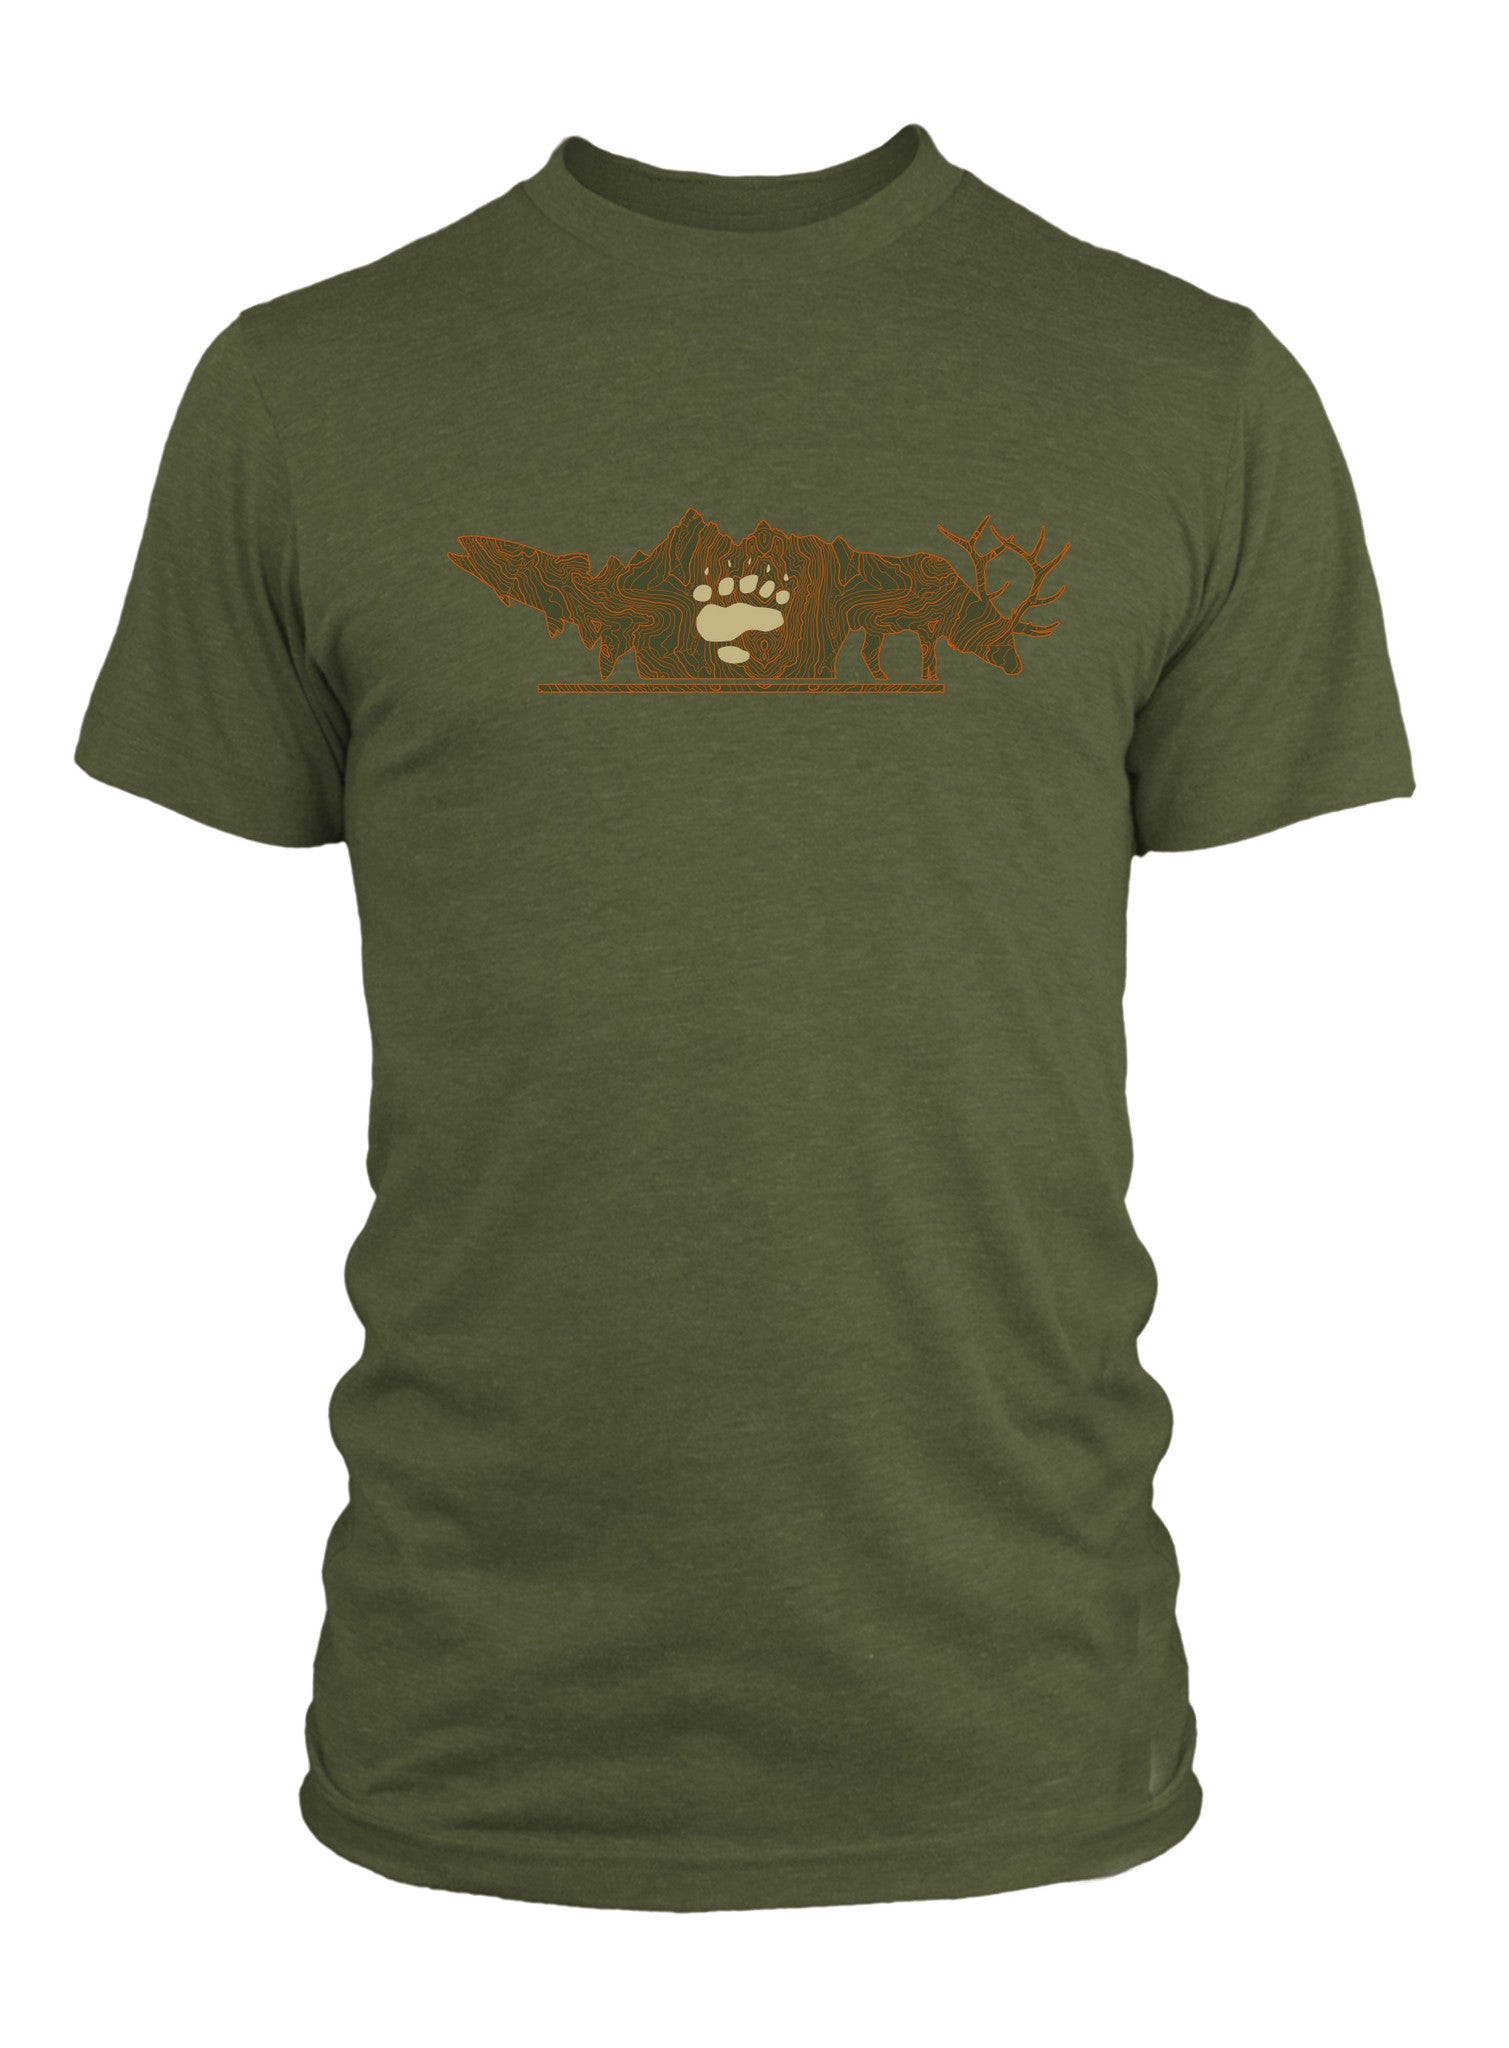 Backcountry Hunters and Anglers Tee